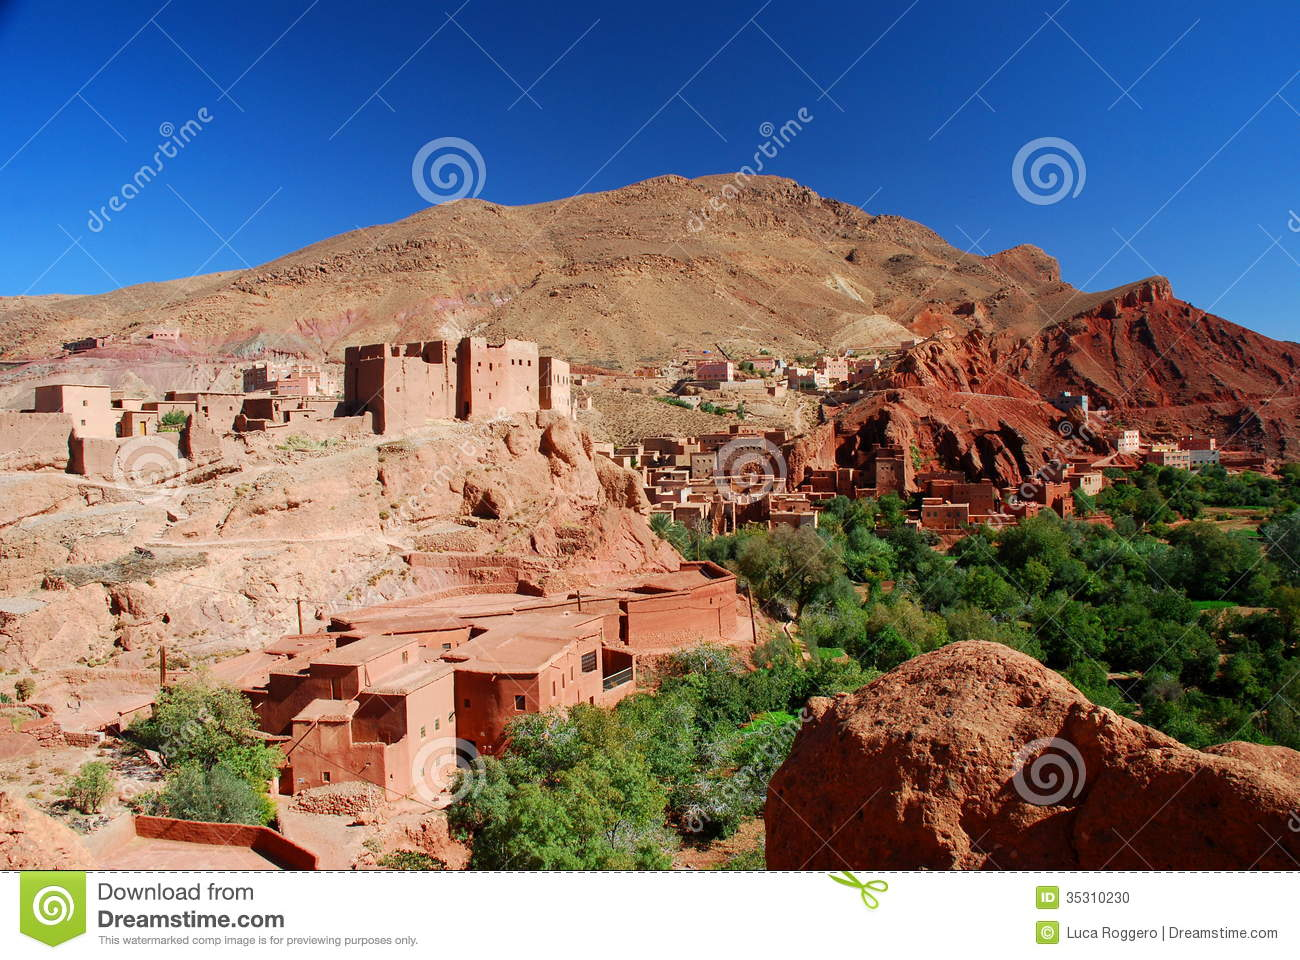 Kasbah at sunset, Ait Arbi, Dades Valley #18978332 Puzzle